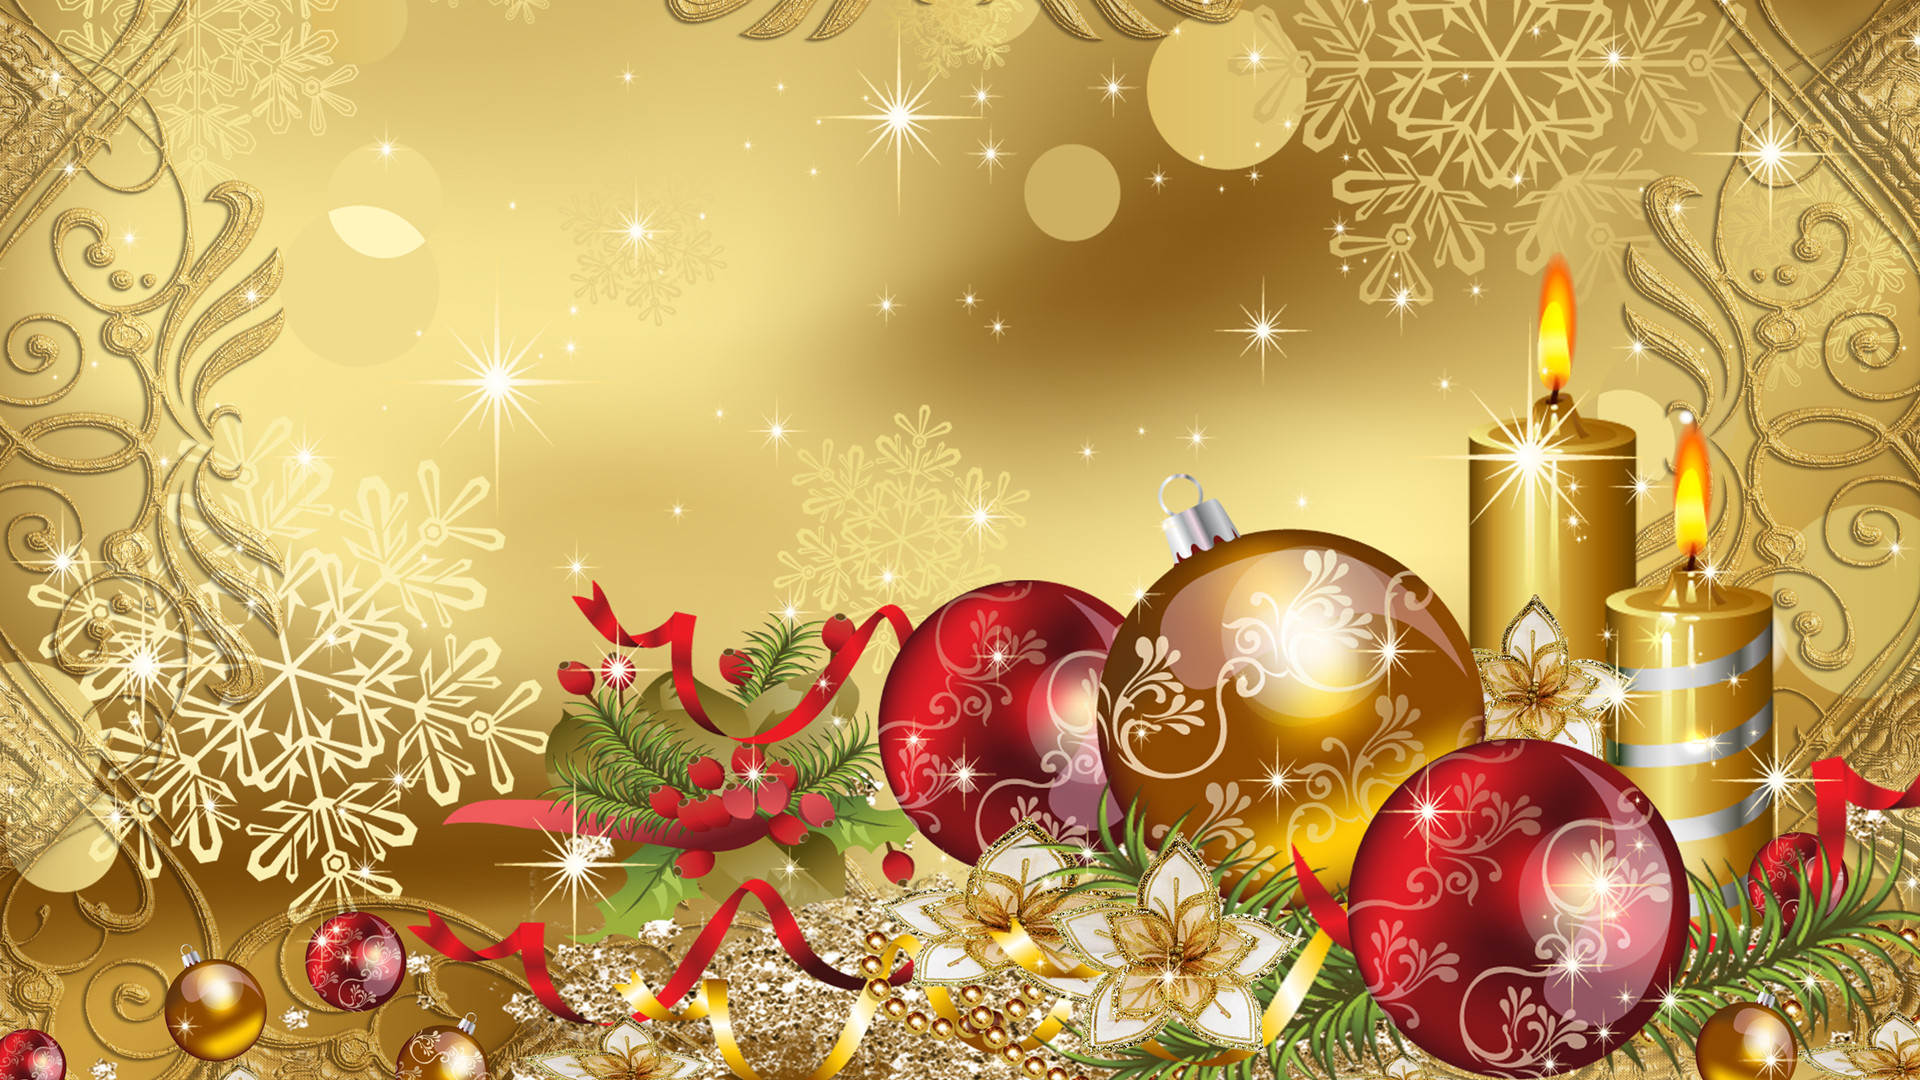 Cool christmas backgrounds 2017.